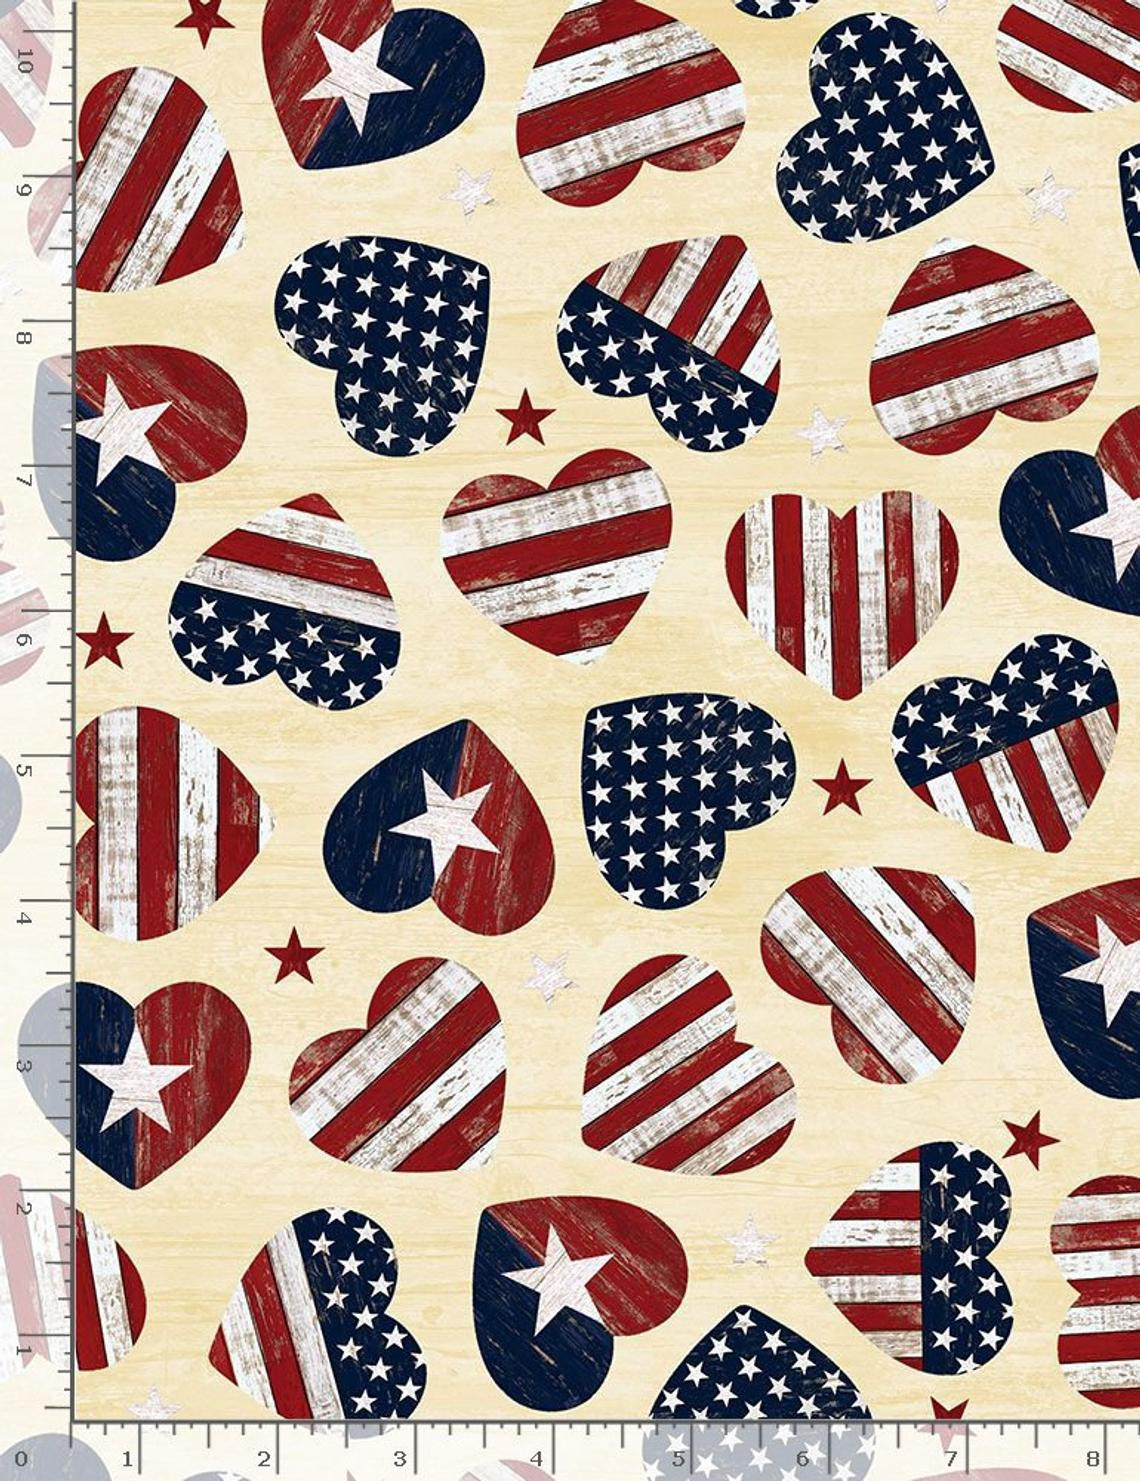 USA Vintage Cream Red Blue Hearts Stars United States of America Fat Quarter Cotton Fabric by Timeless Treasures (UK)